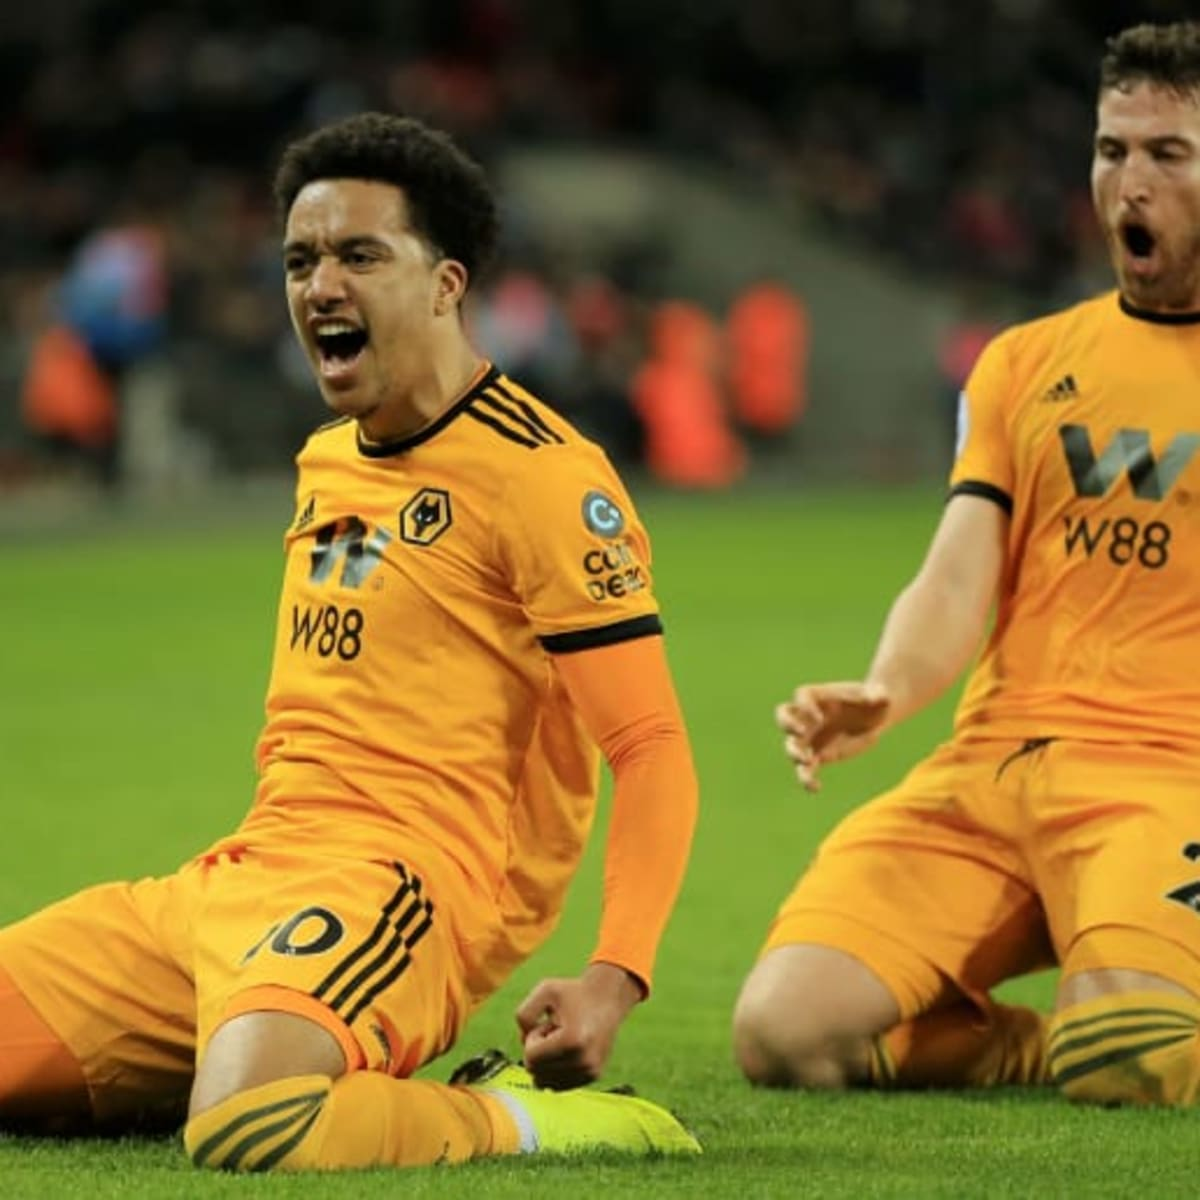 Wolves Vs Crystal Palace Preview Where To Watch Live Stream Team News Predictions More Sports Illustrated